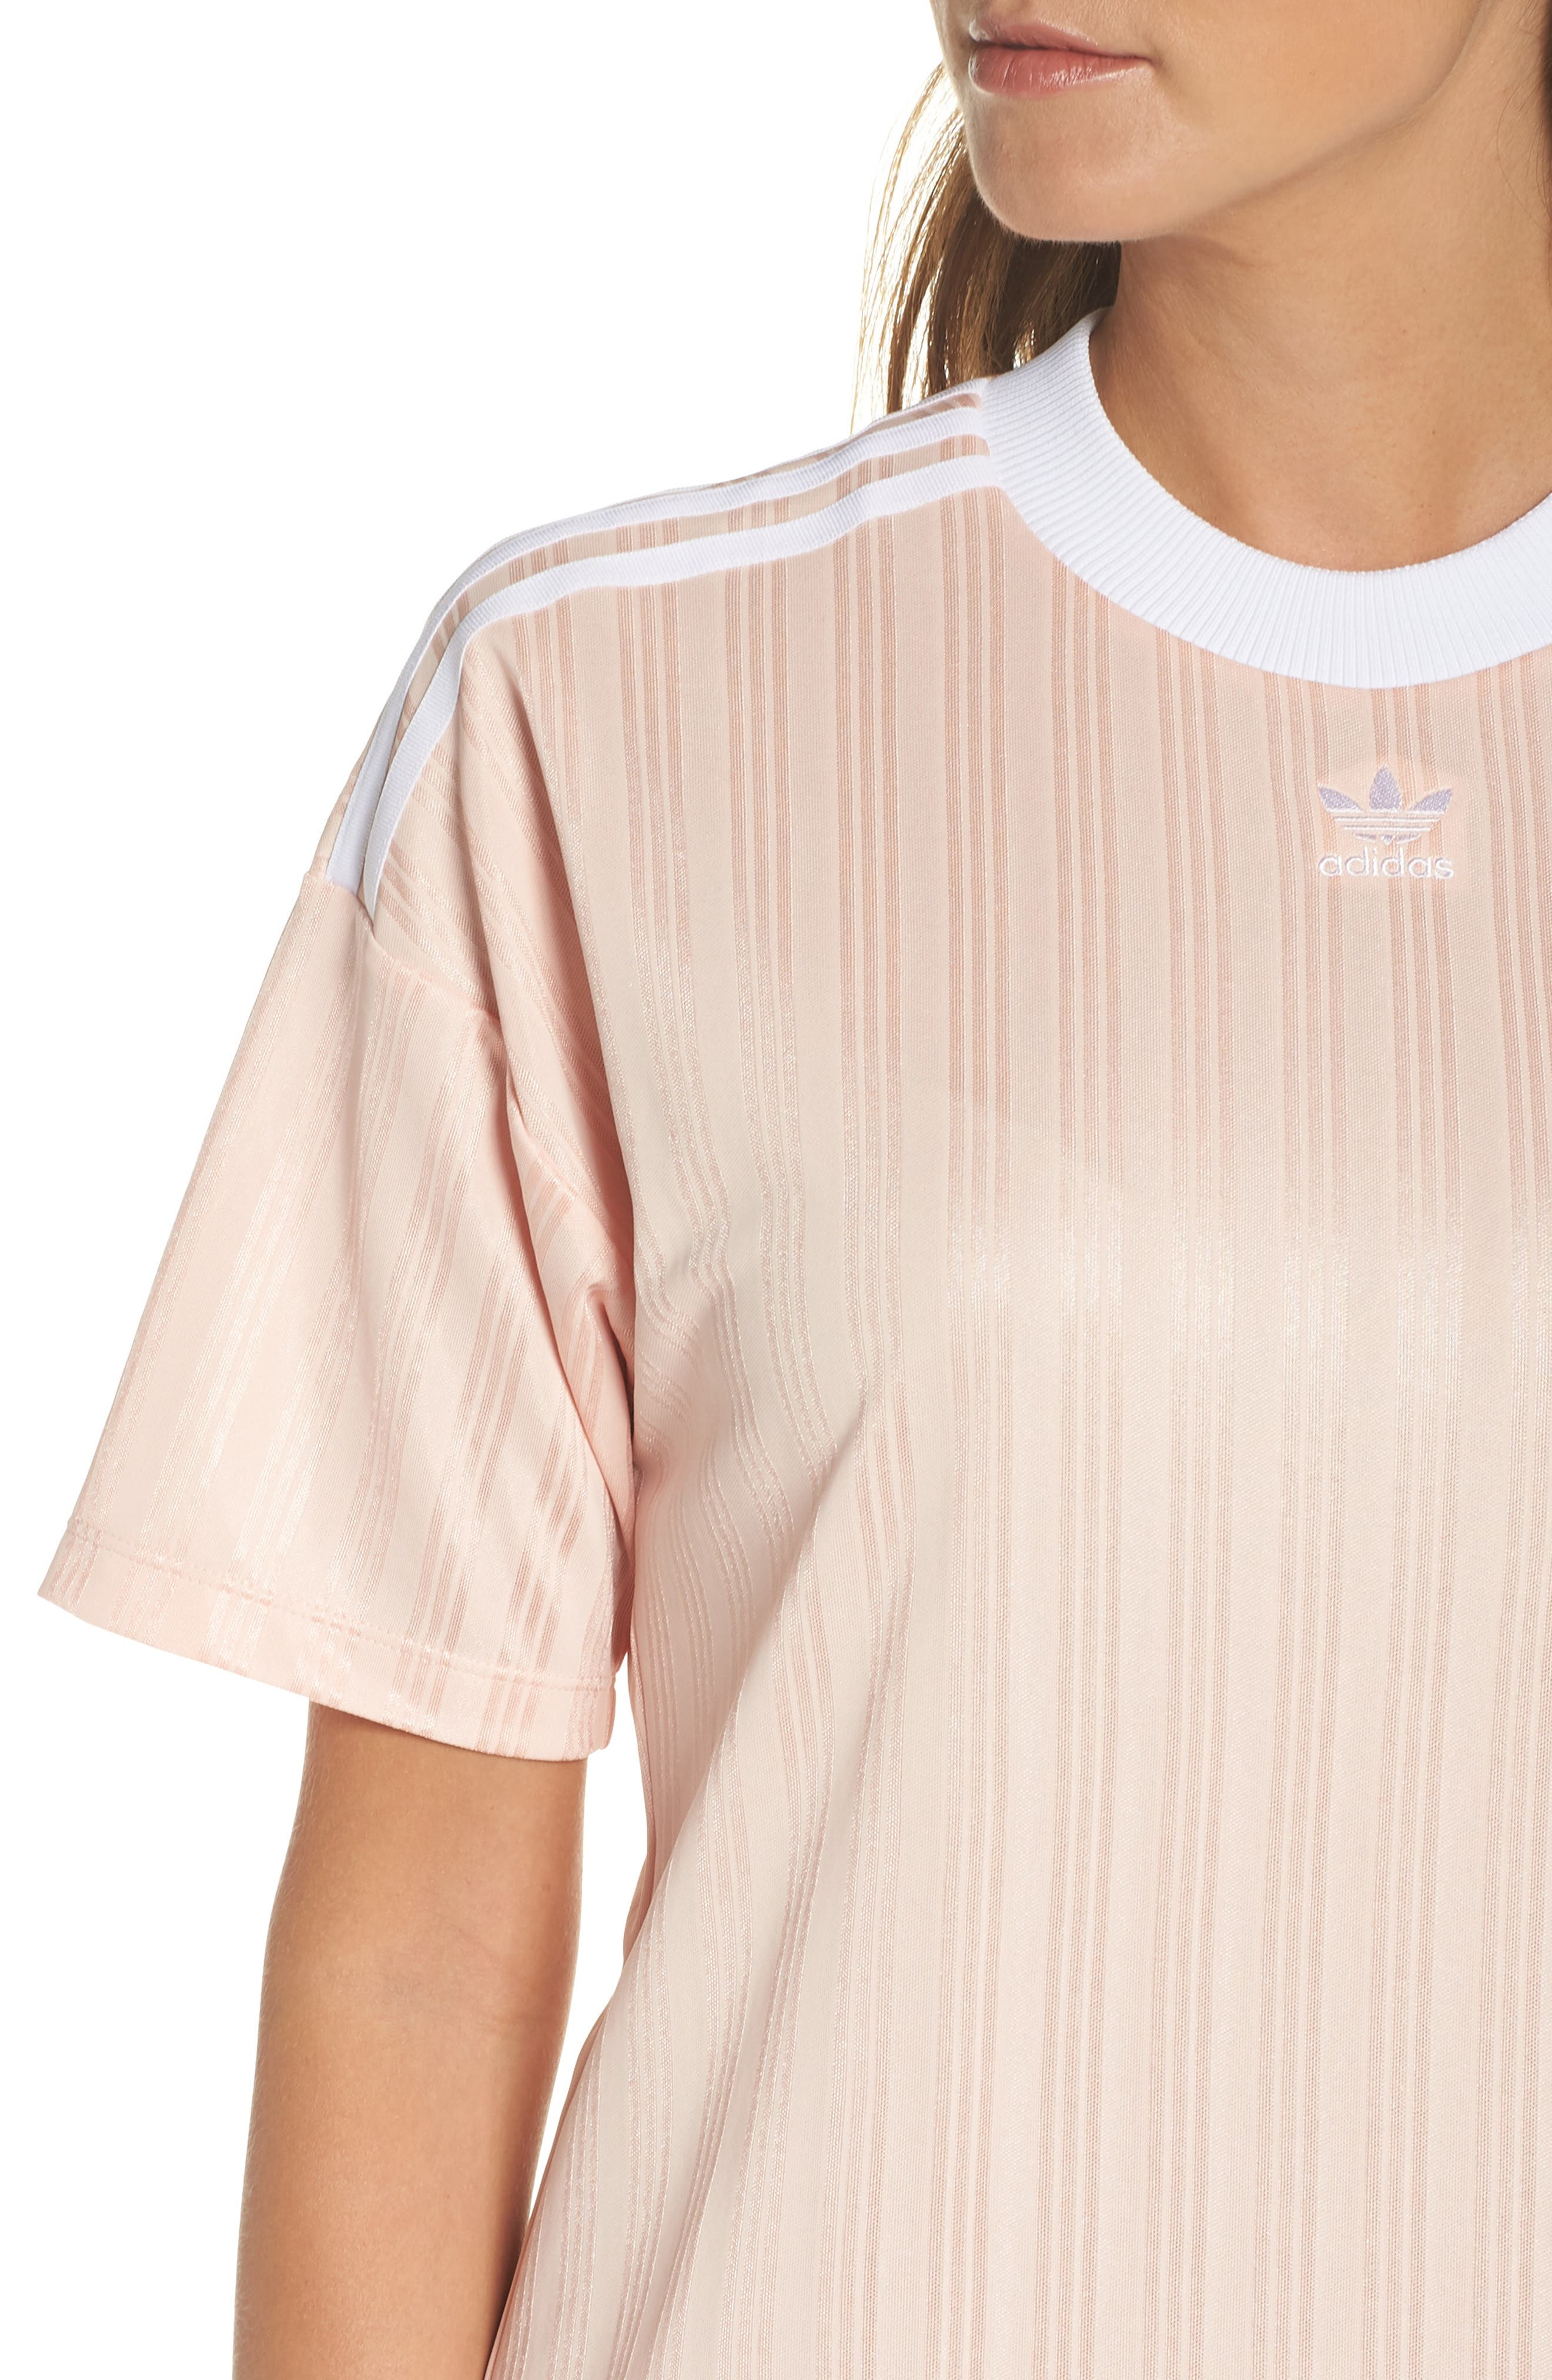 Originals Trefoil T-Shirt Dress,                             Alternate thumbnail 3, color,                             Blush Pink